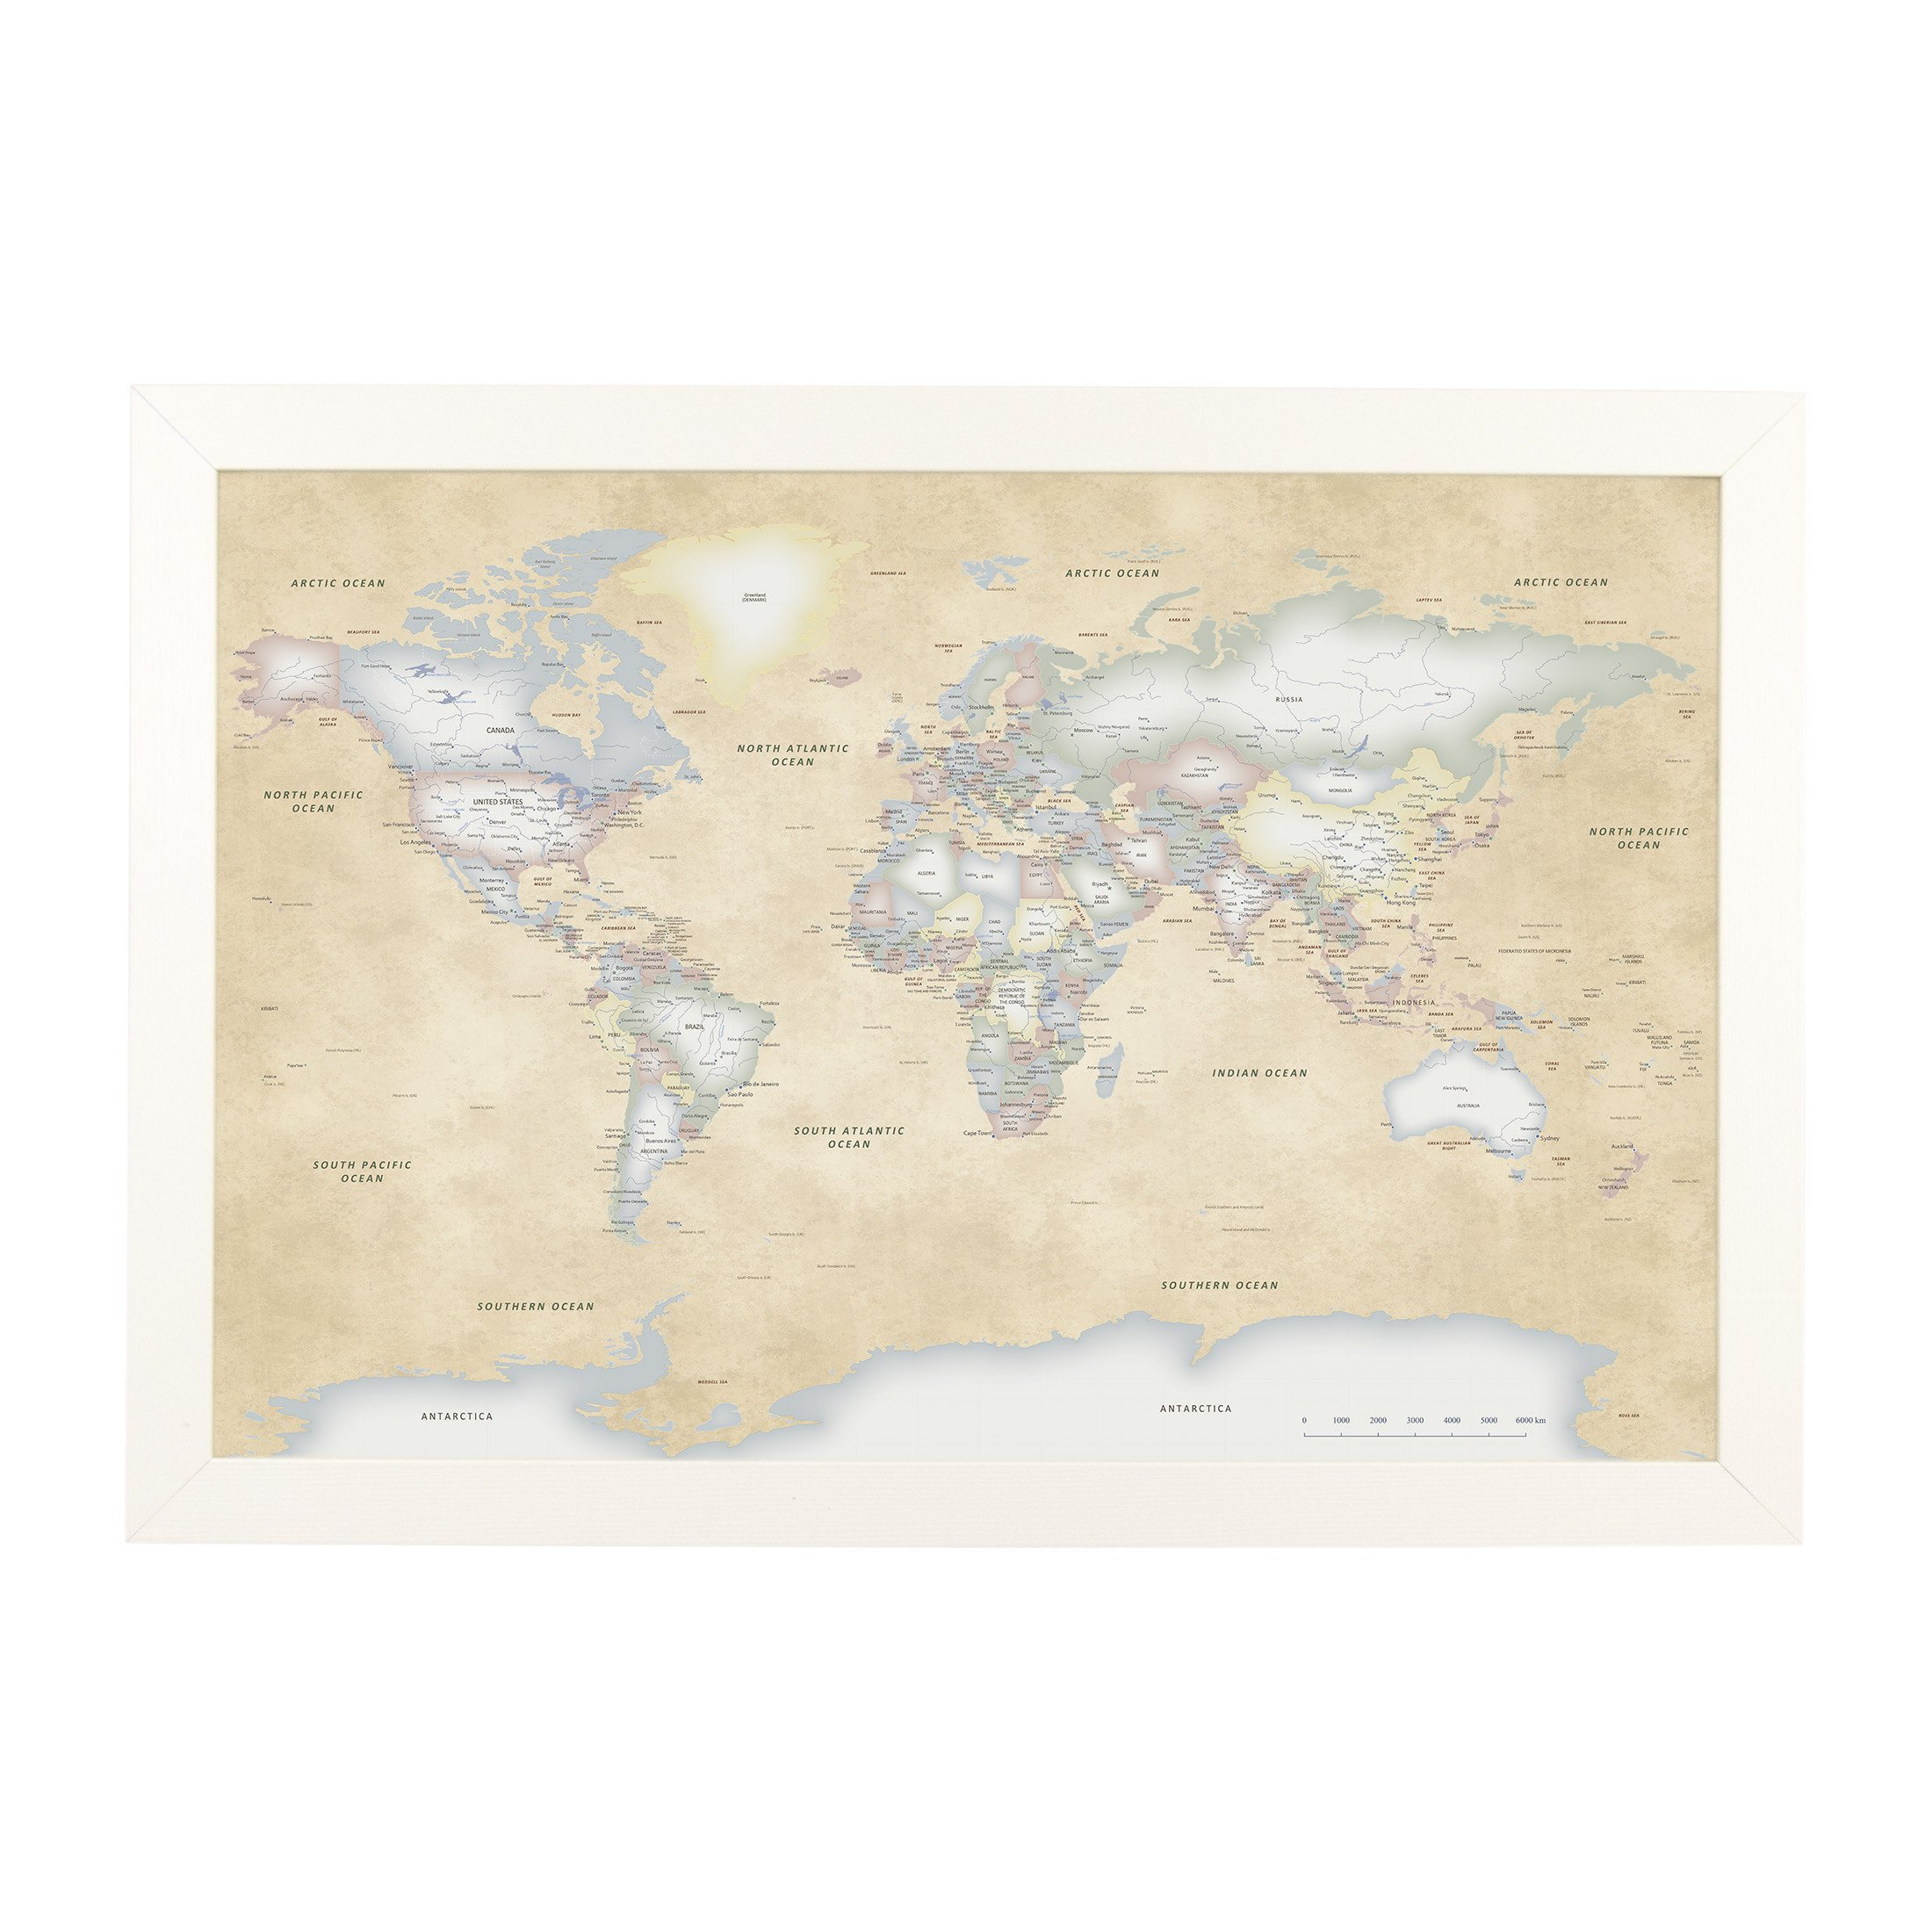 Push Pin Travel Maps Perfectly Pastel World with Textured White Frame and Pins 24 x 36 by Push Pin Travel Maps